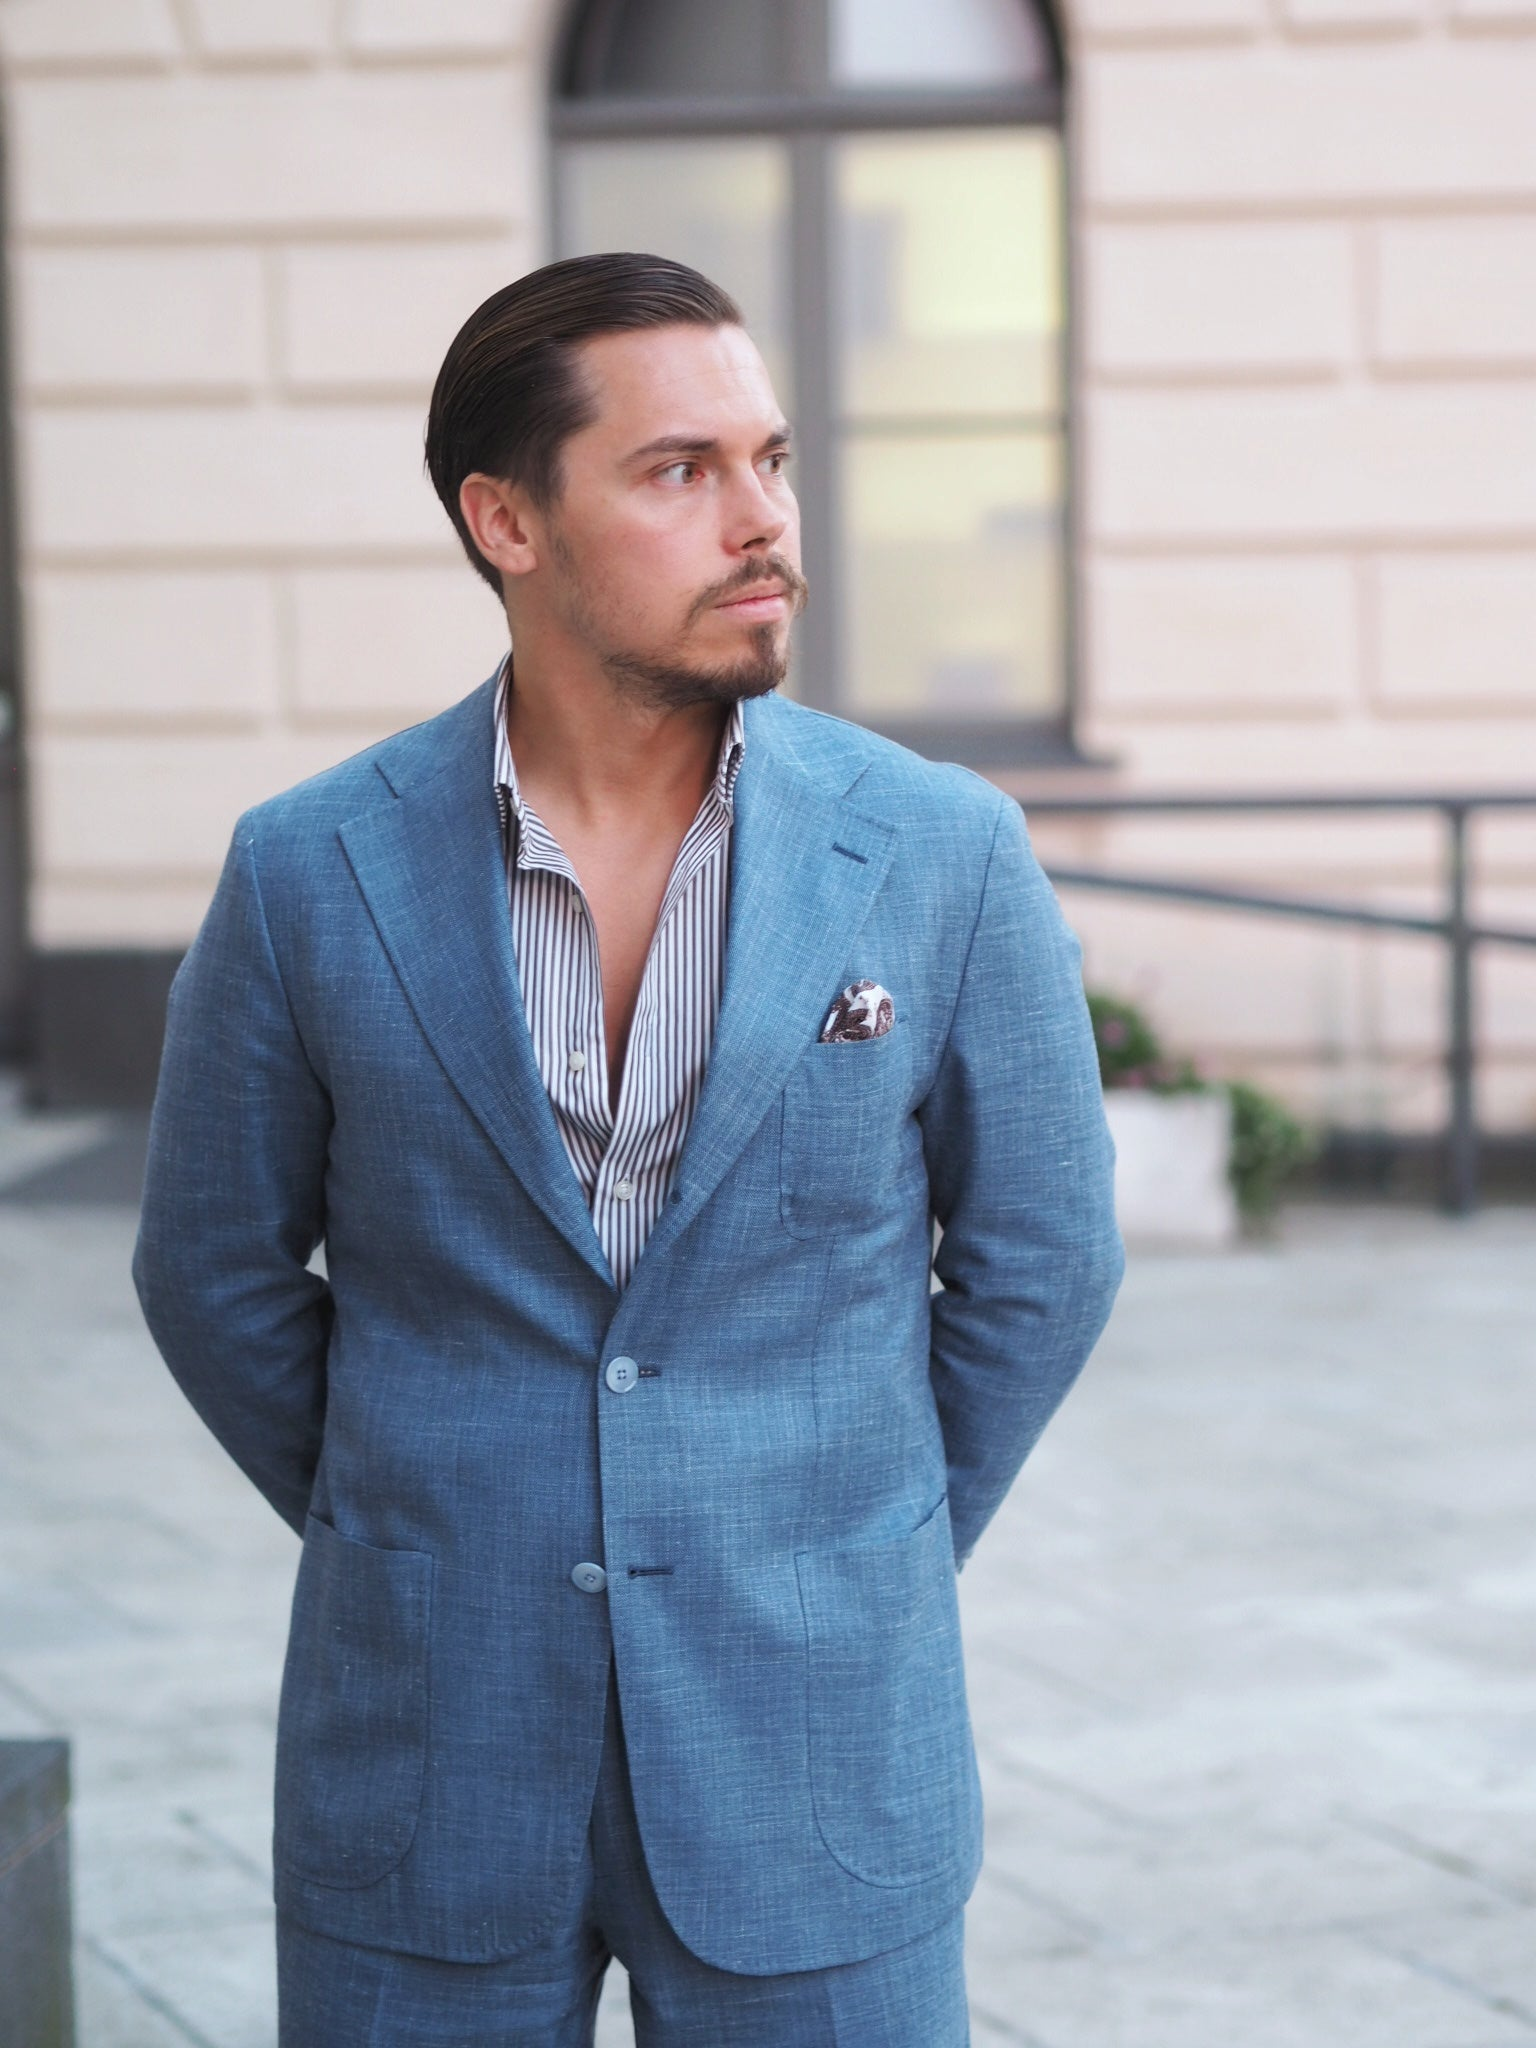 Light blue suit for summer - with striped shirt and brown linen pocket square